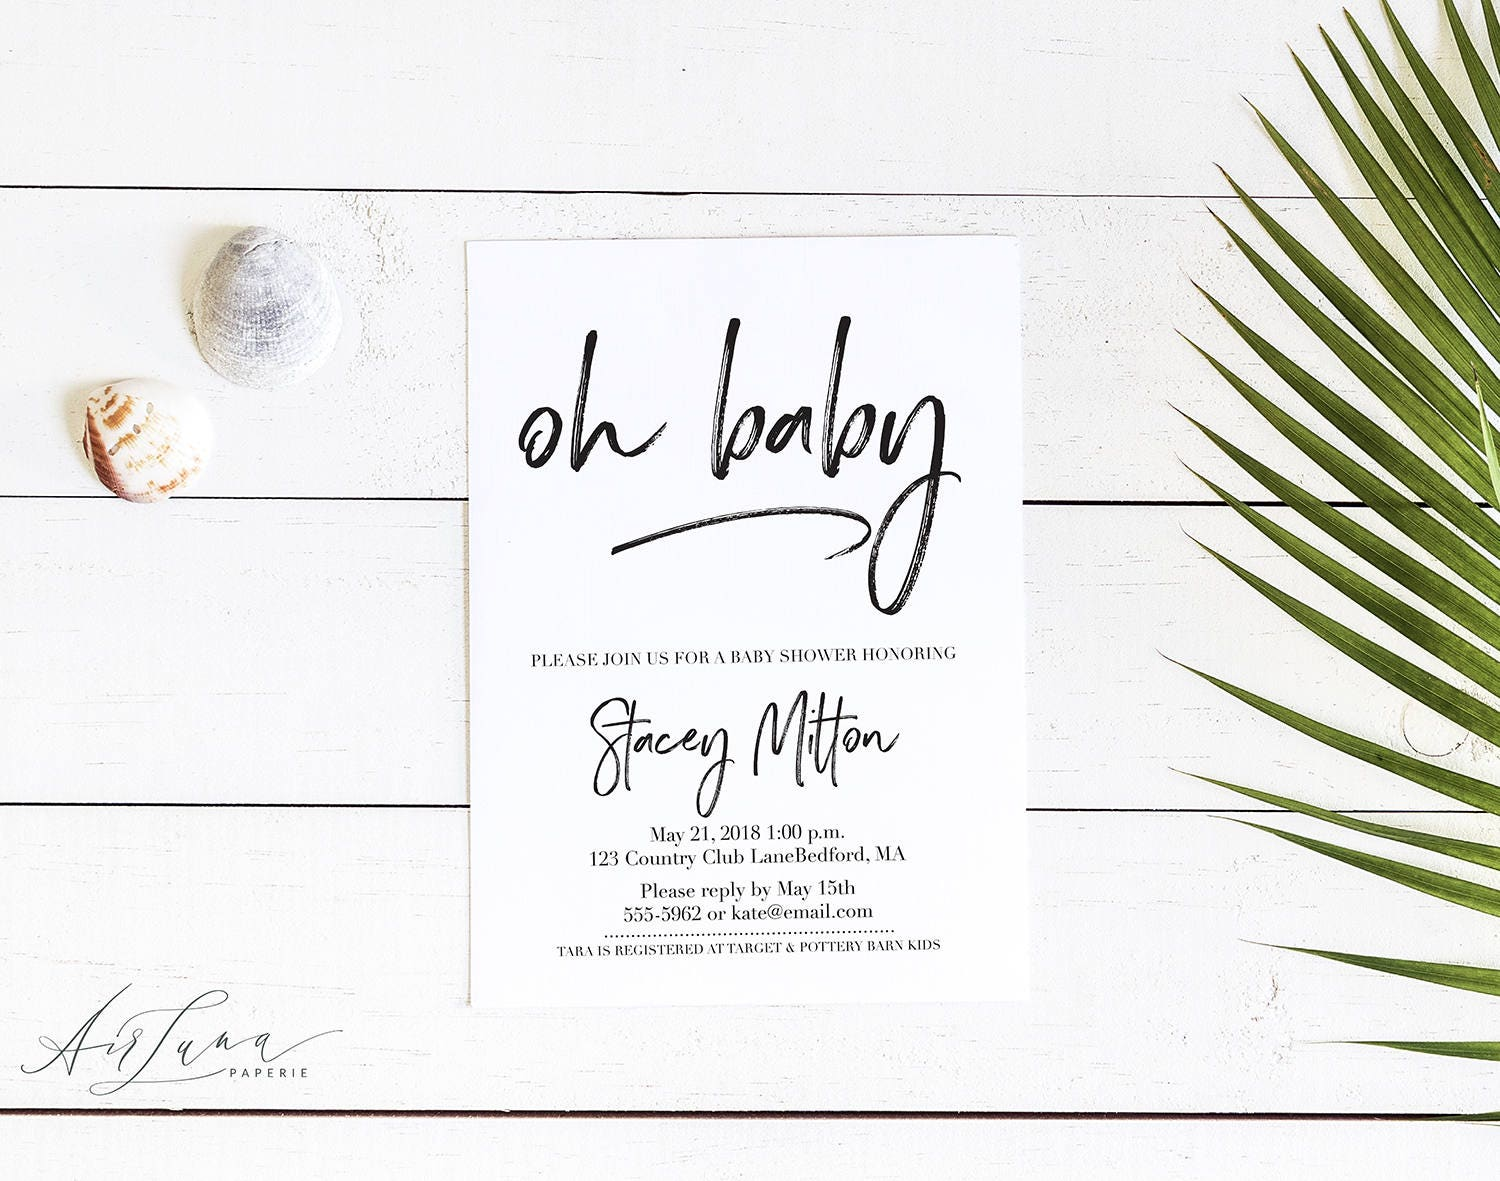 Oh Baby Invitation Elegant Baby Shower Simple Baby Shower